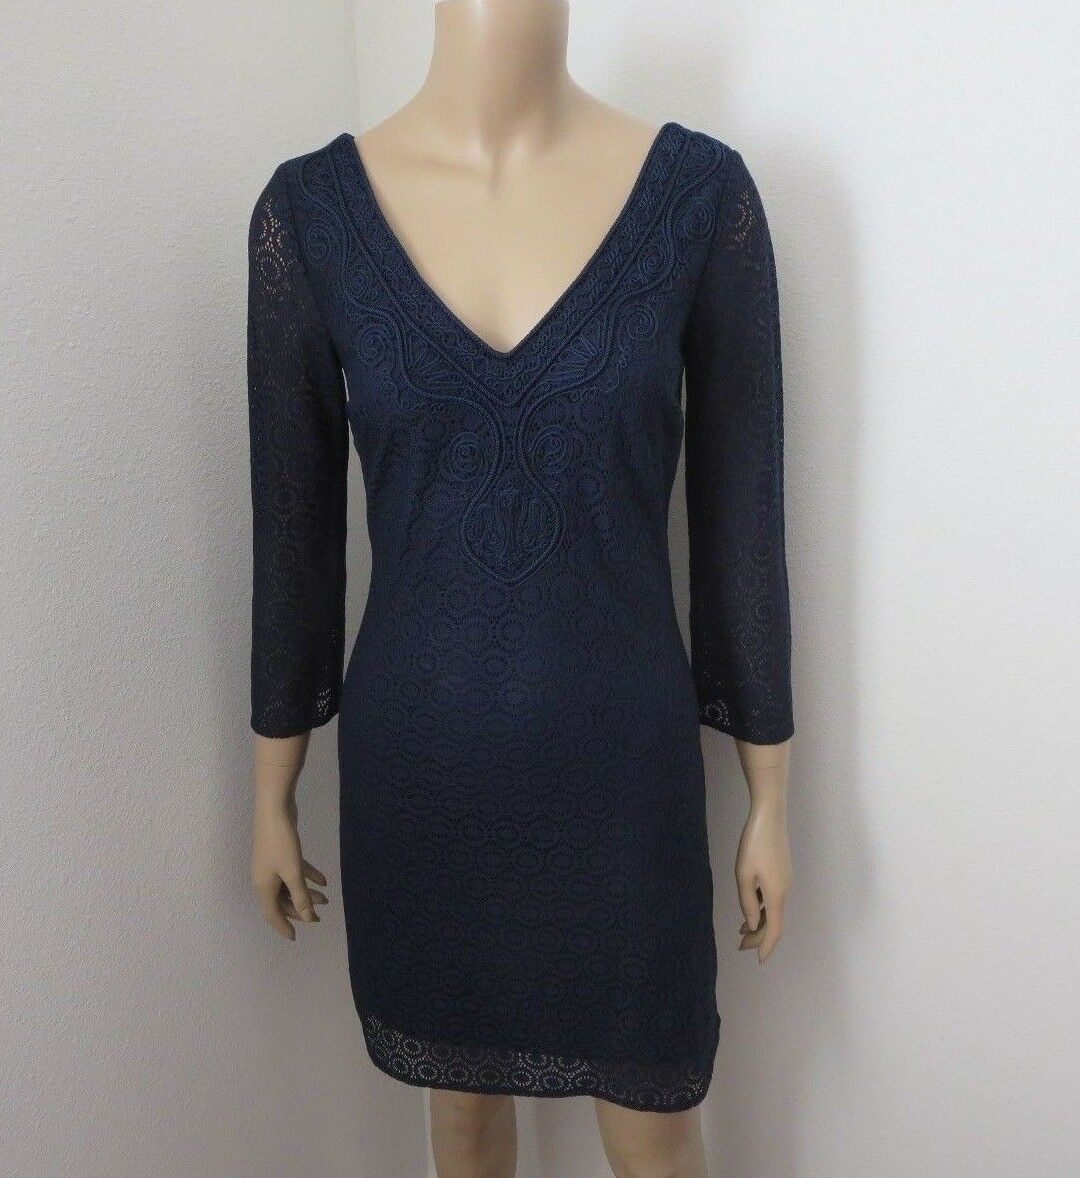 NEW Lilly Pulitzer Alden Lace Tunic Shift Dress Größe XS Navy Blau 3 4 Sleeves